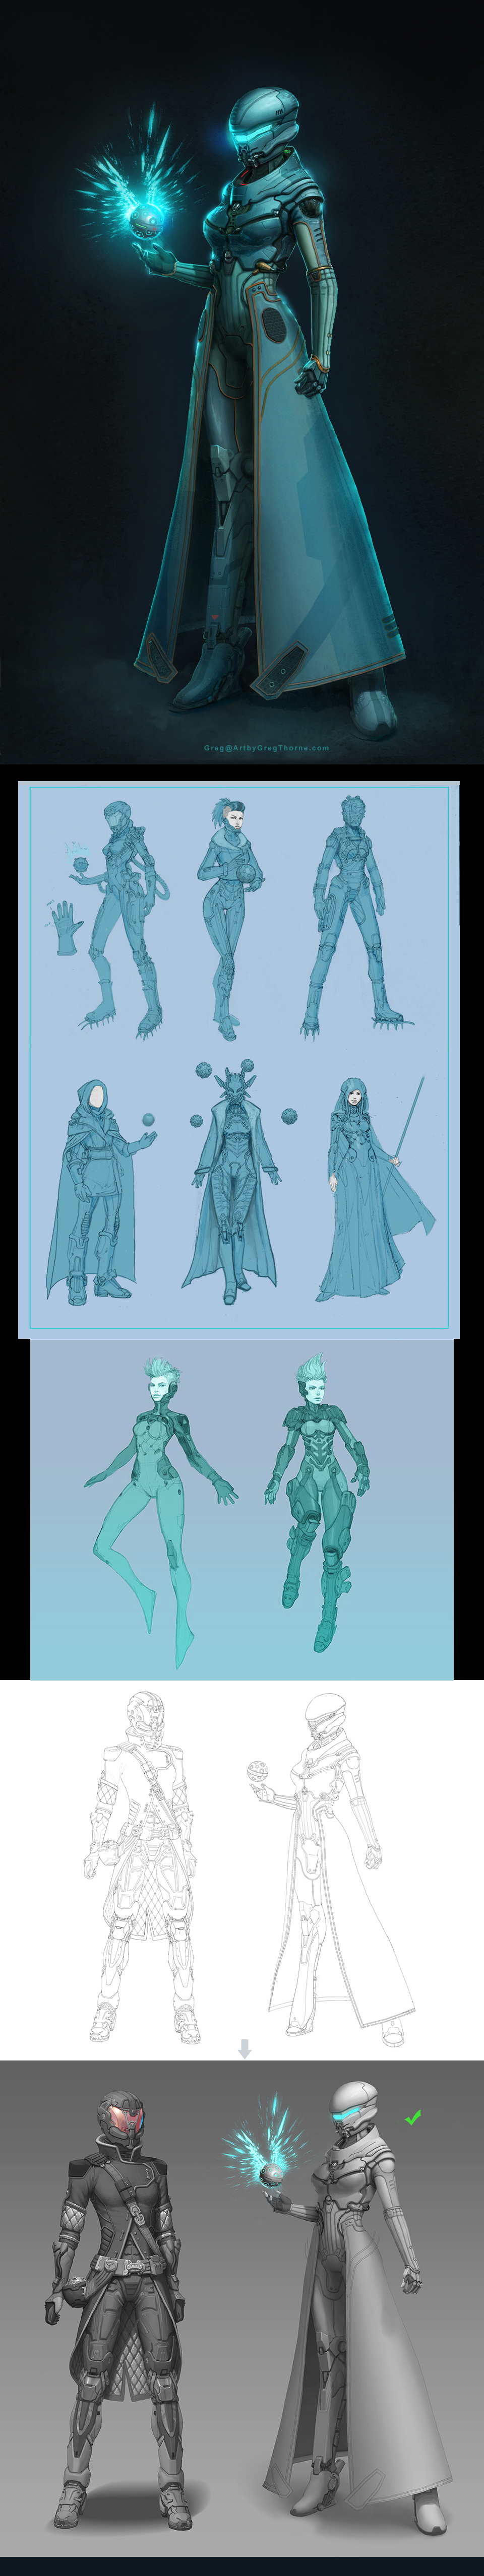 IceMage-process_by_GregThorne.jpg